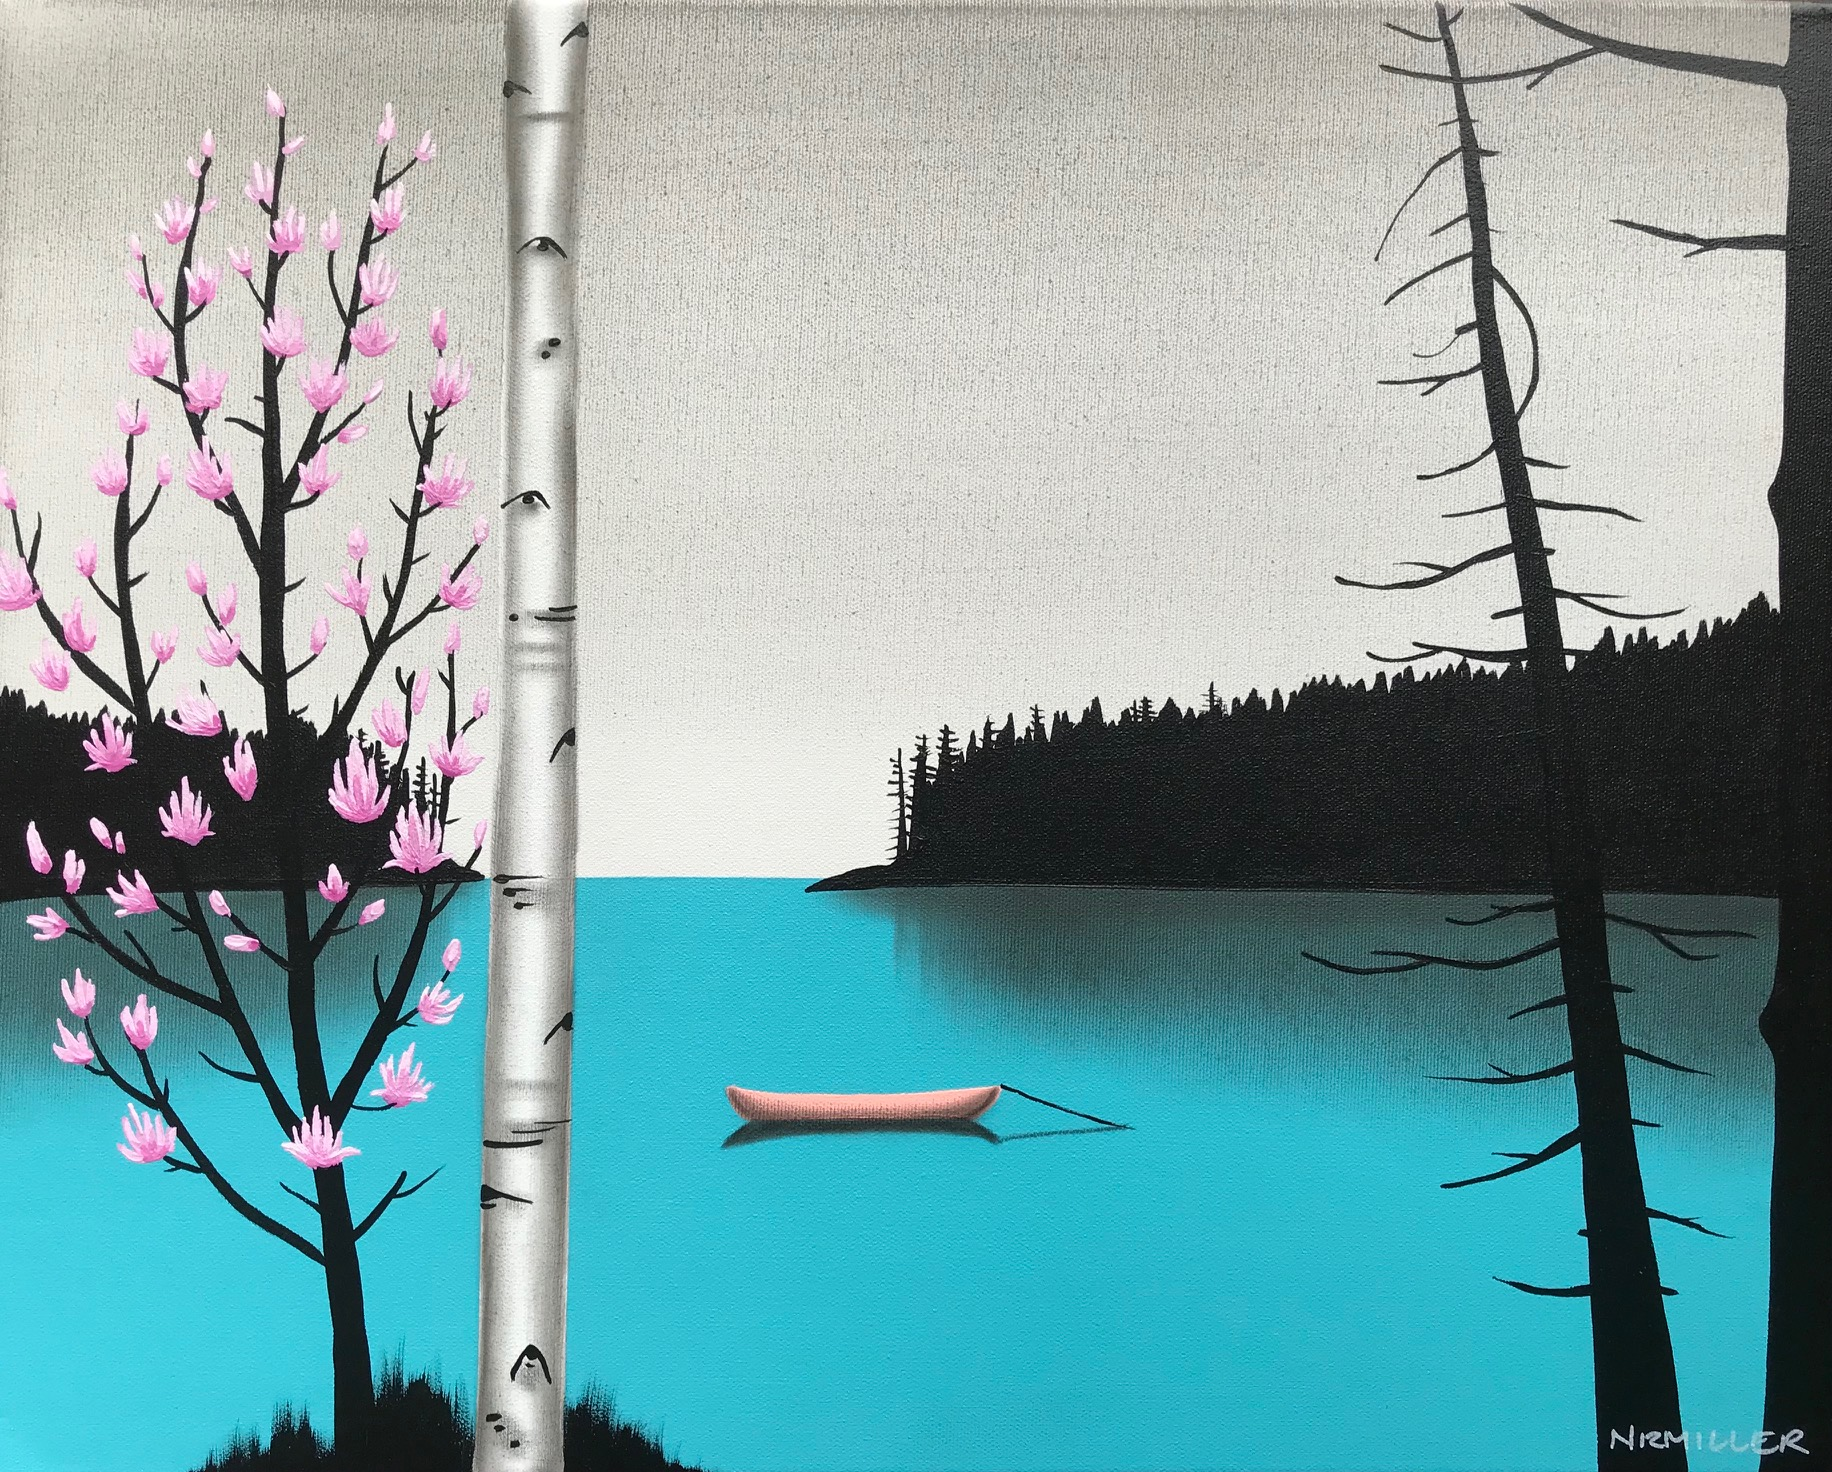 Mountain Magnolias, mixed media landscape painting by Natasha Miller | Effusion Art Gallery + Cast Glass Studio, Invermere BC